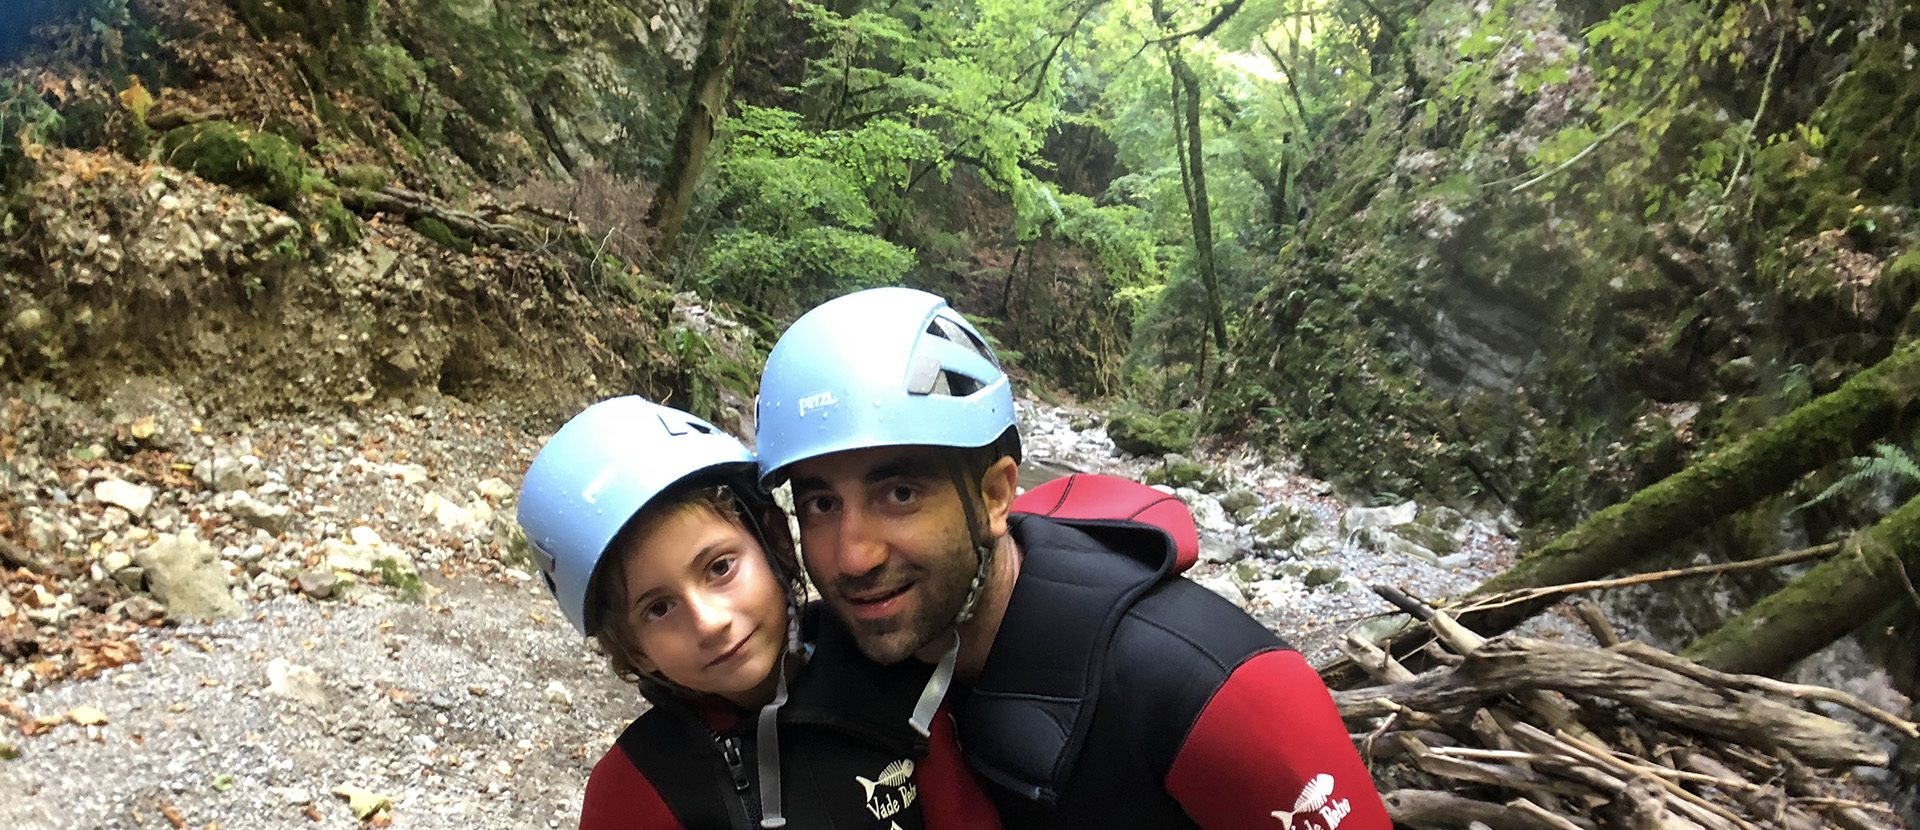 Formule famille - canyoning Angon